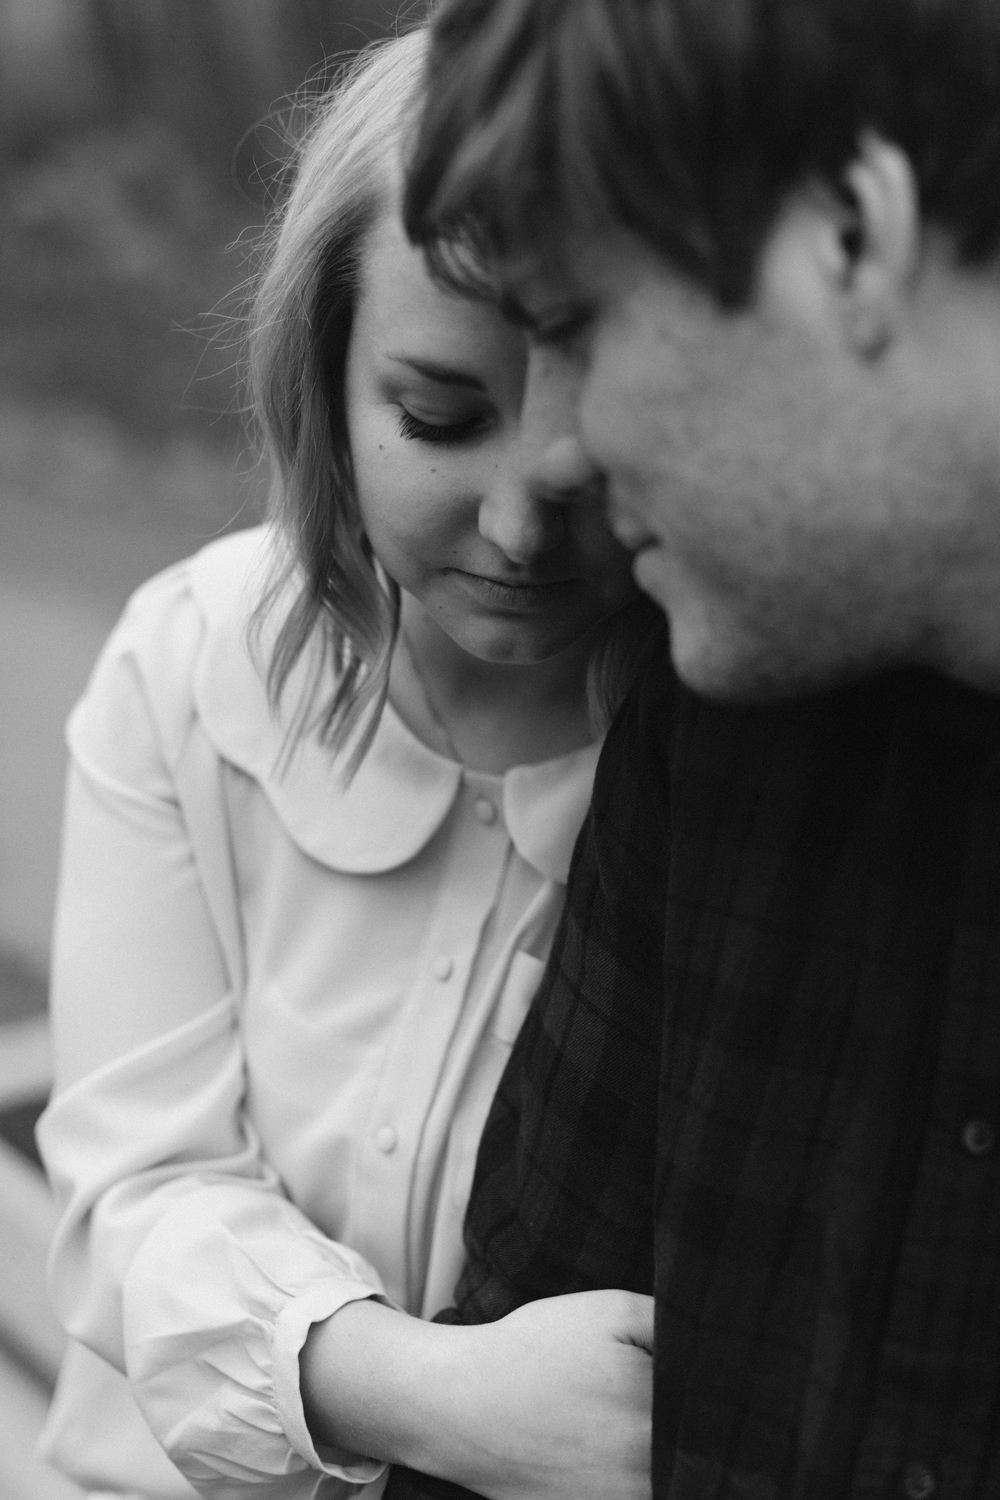 Grand Rapids Michigan Engagement photos Lifestyle Wedding Photographer Mae Stier Candid Photography-004.jpg